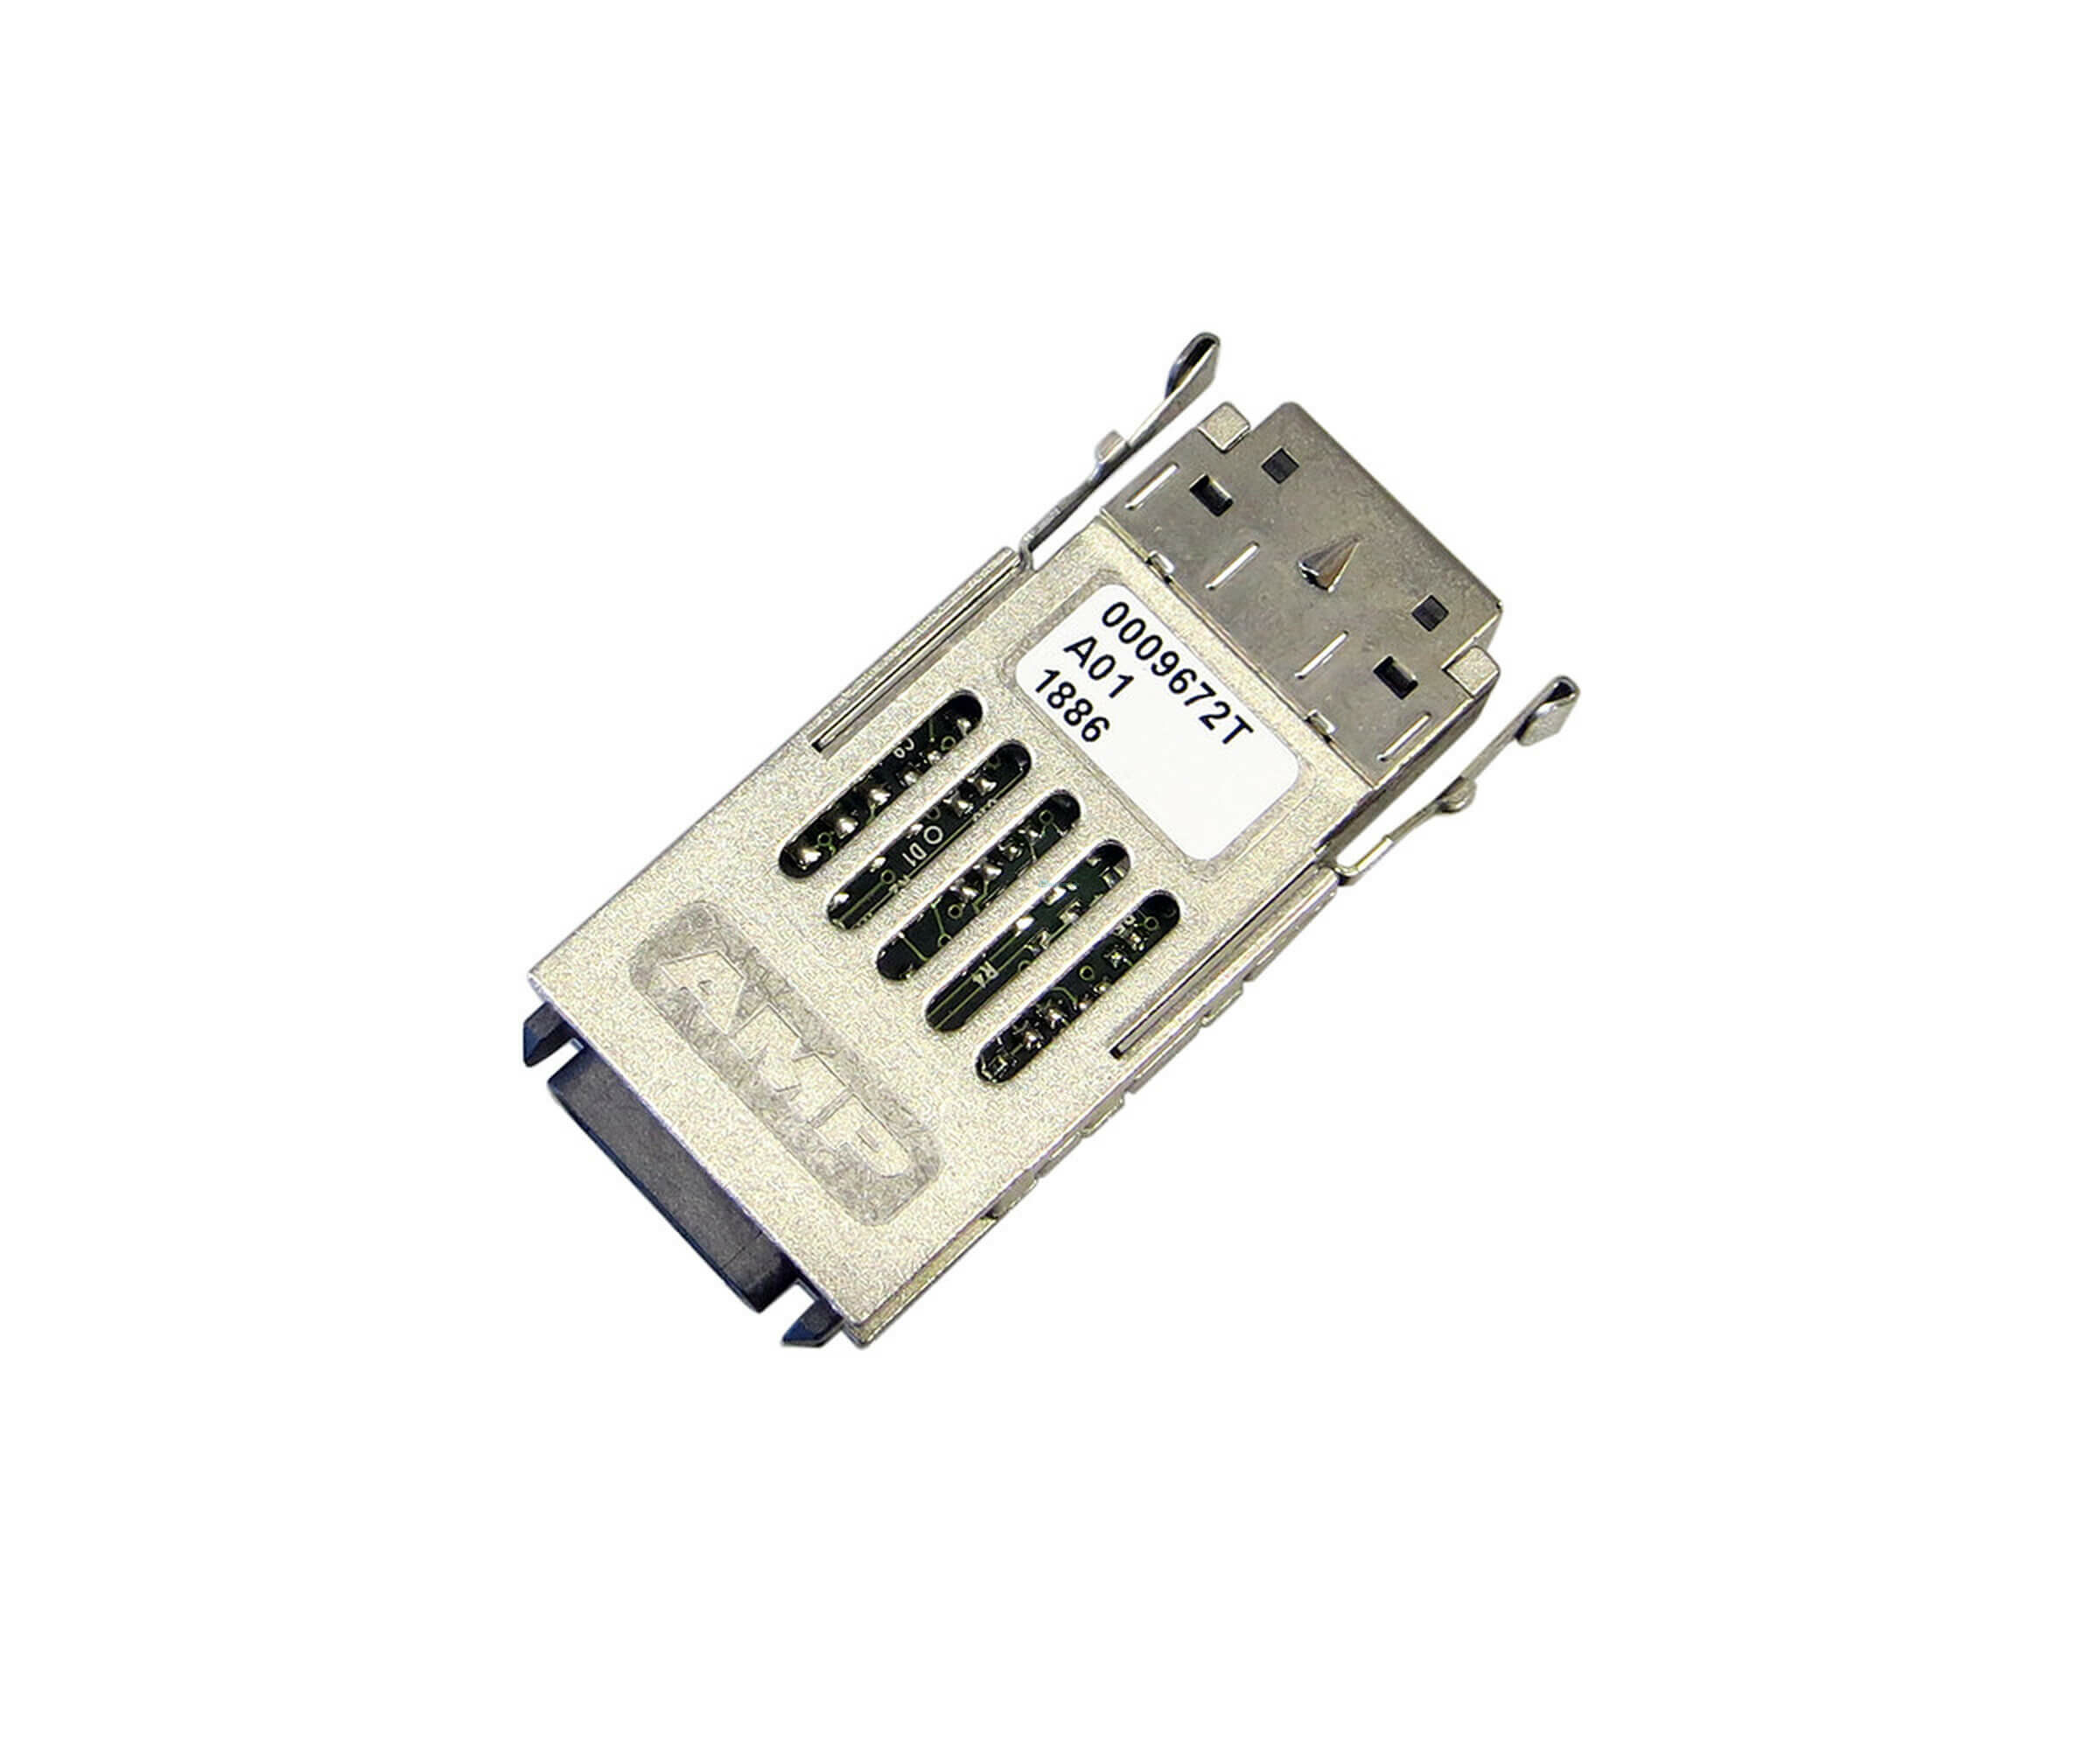 Dell 9672T Transceiver Modul - 1000Base-CX GBIC Adapter - 0009672T